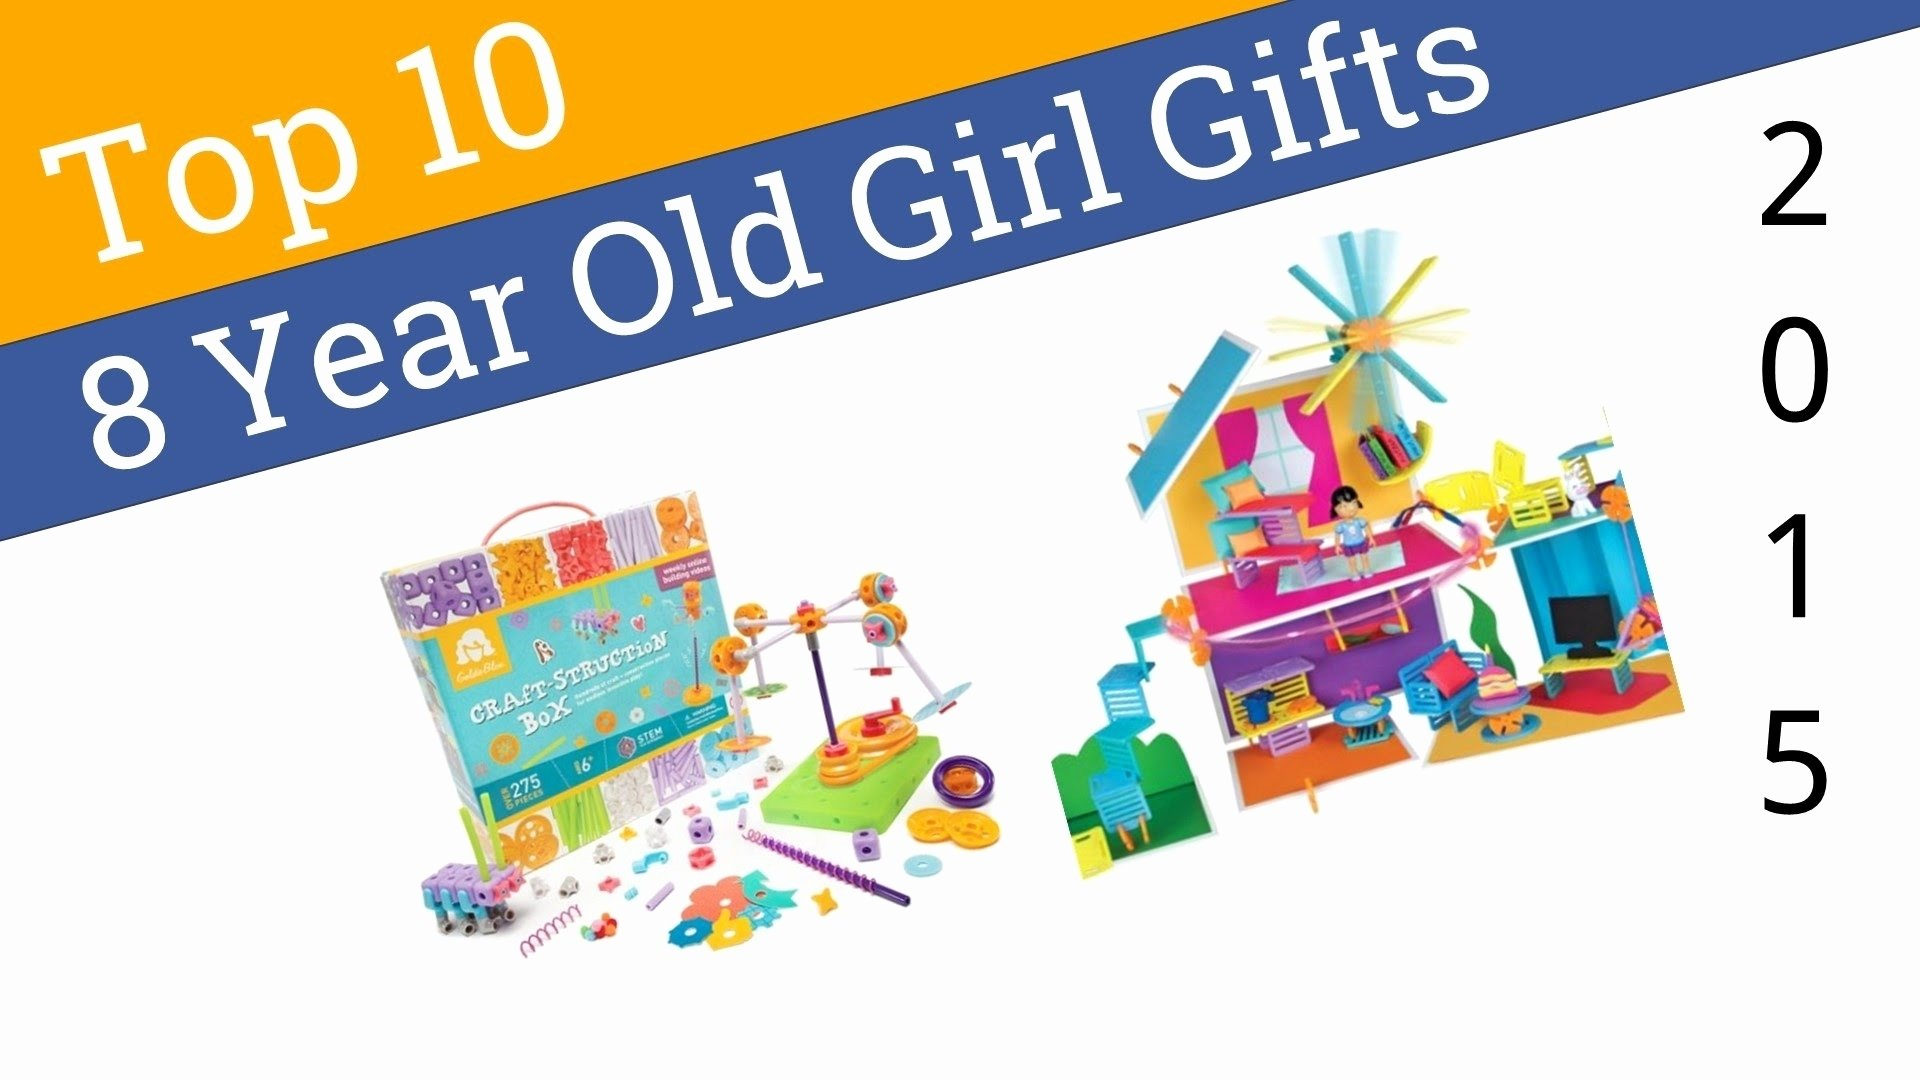 10 Trendy Gift Ideas For An 8 Year Old Girl 8 year old birthday card ideas lovely birthday cards for 8 year olds 1